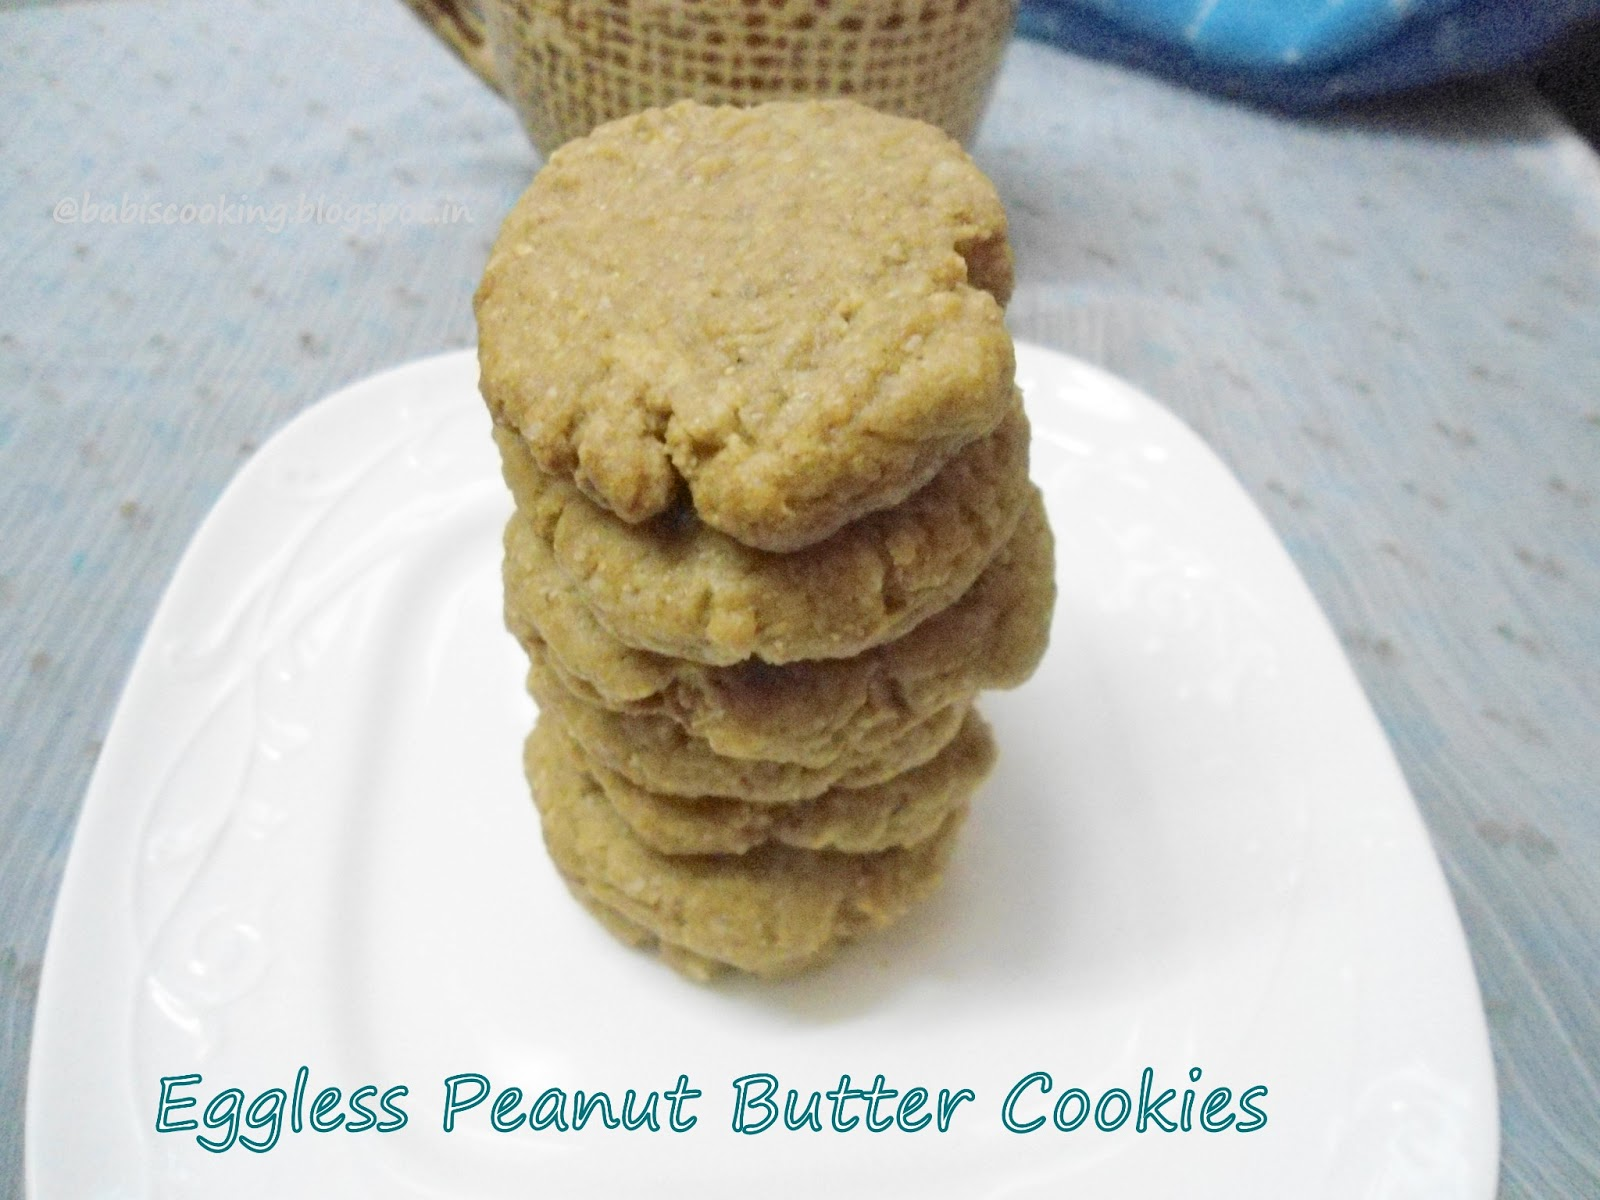 eggless penut butter cookies